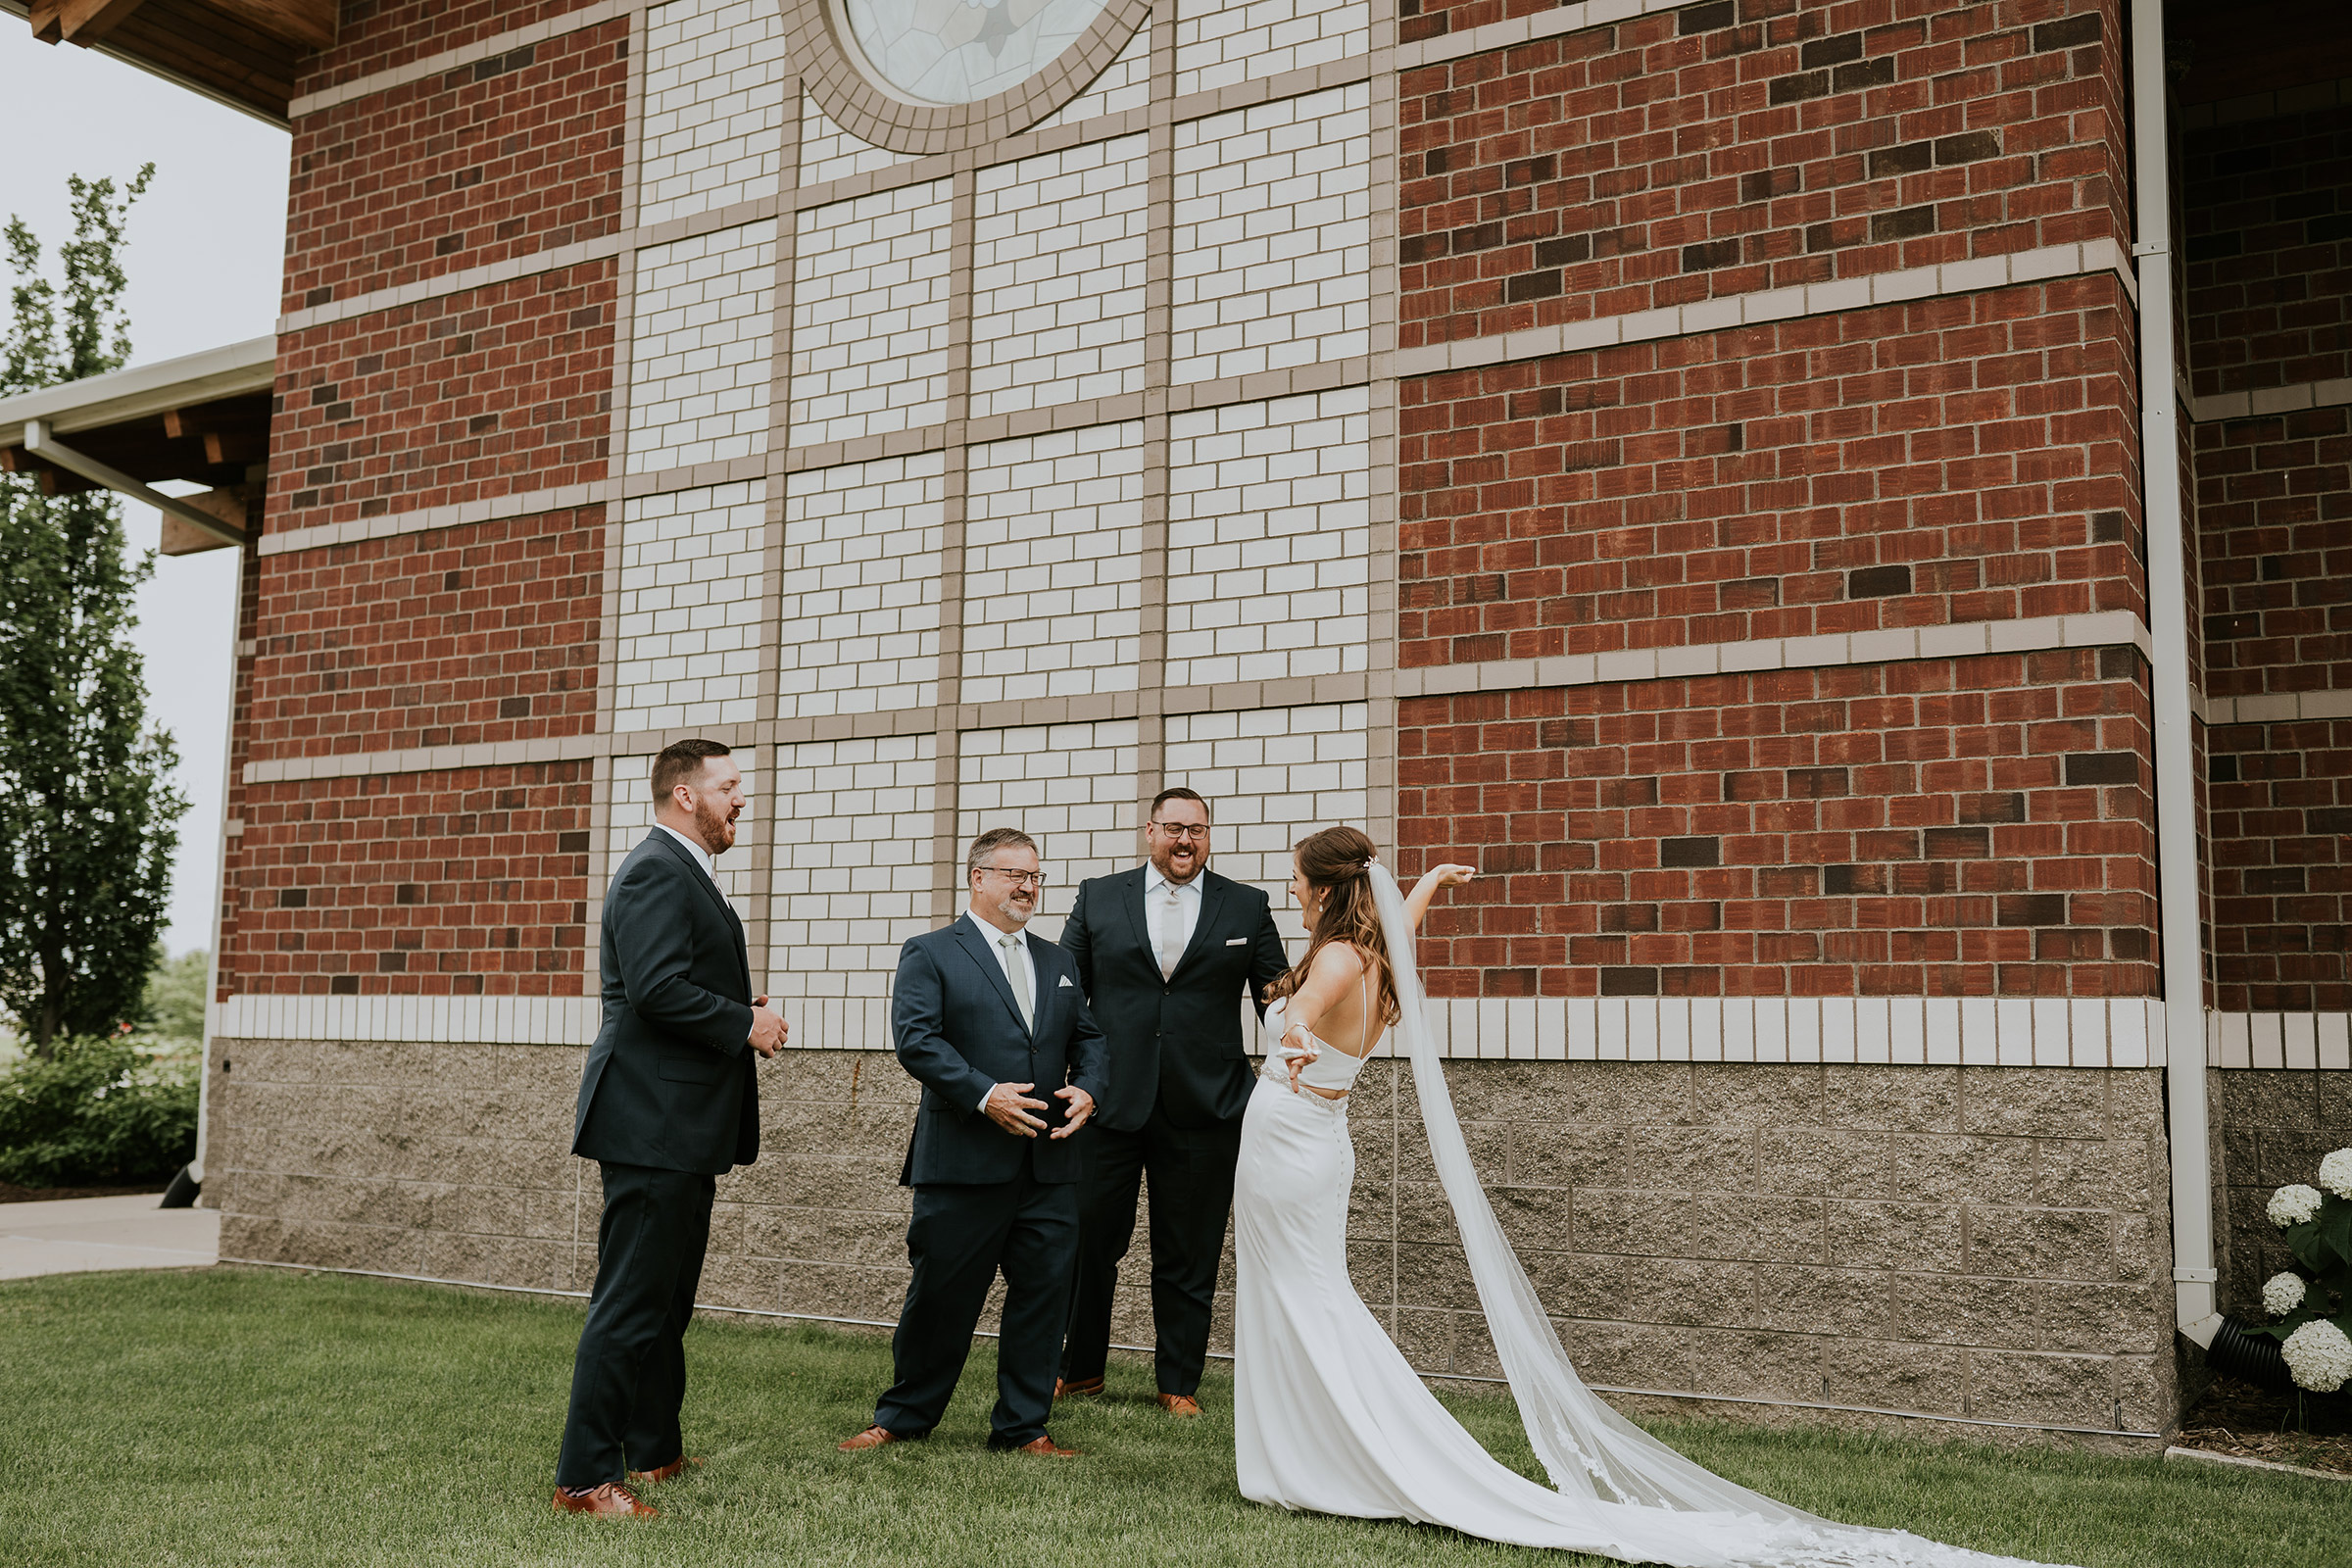 mr-mrs-hull-first-look-with-dad-and-brothers-st-boniface-waukee-desmoines-iowa-raelyn-ramey-photography-262.jpg